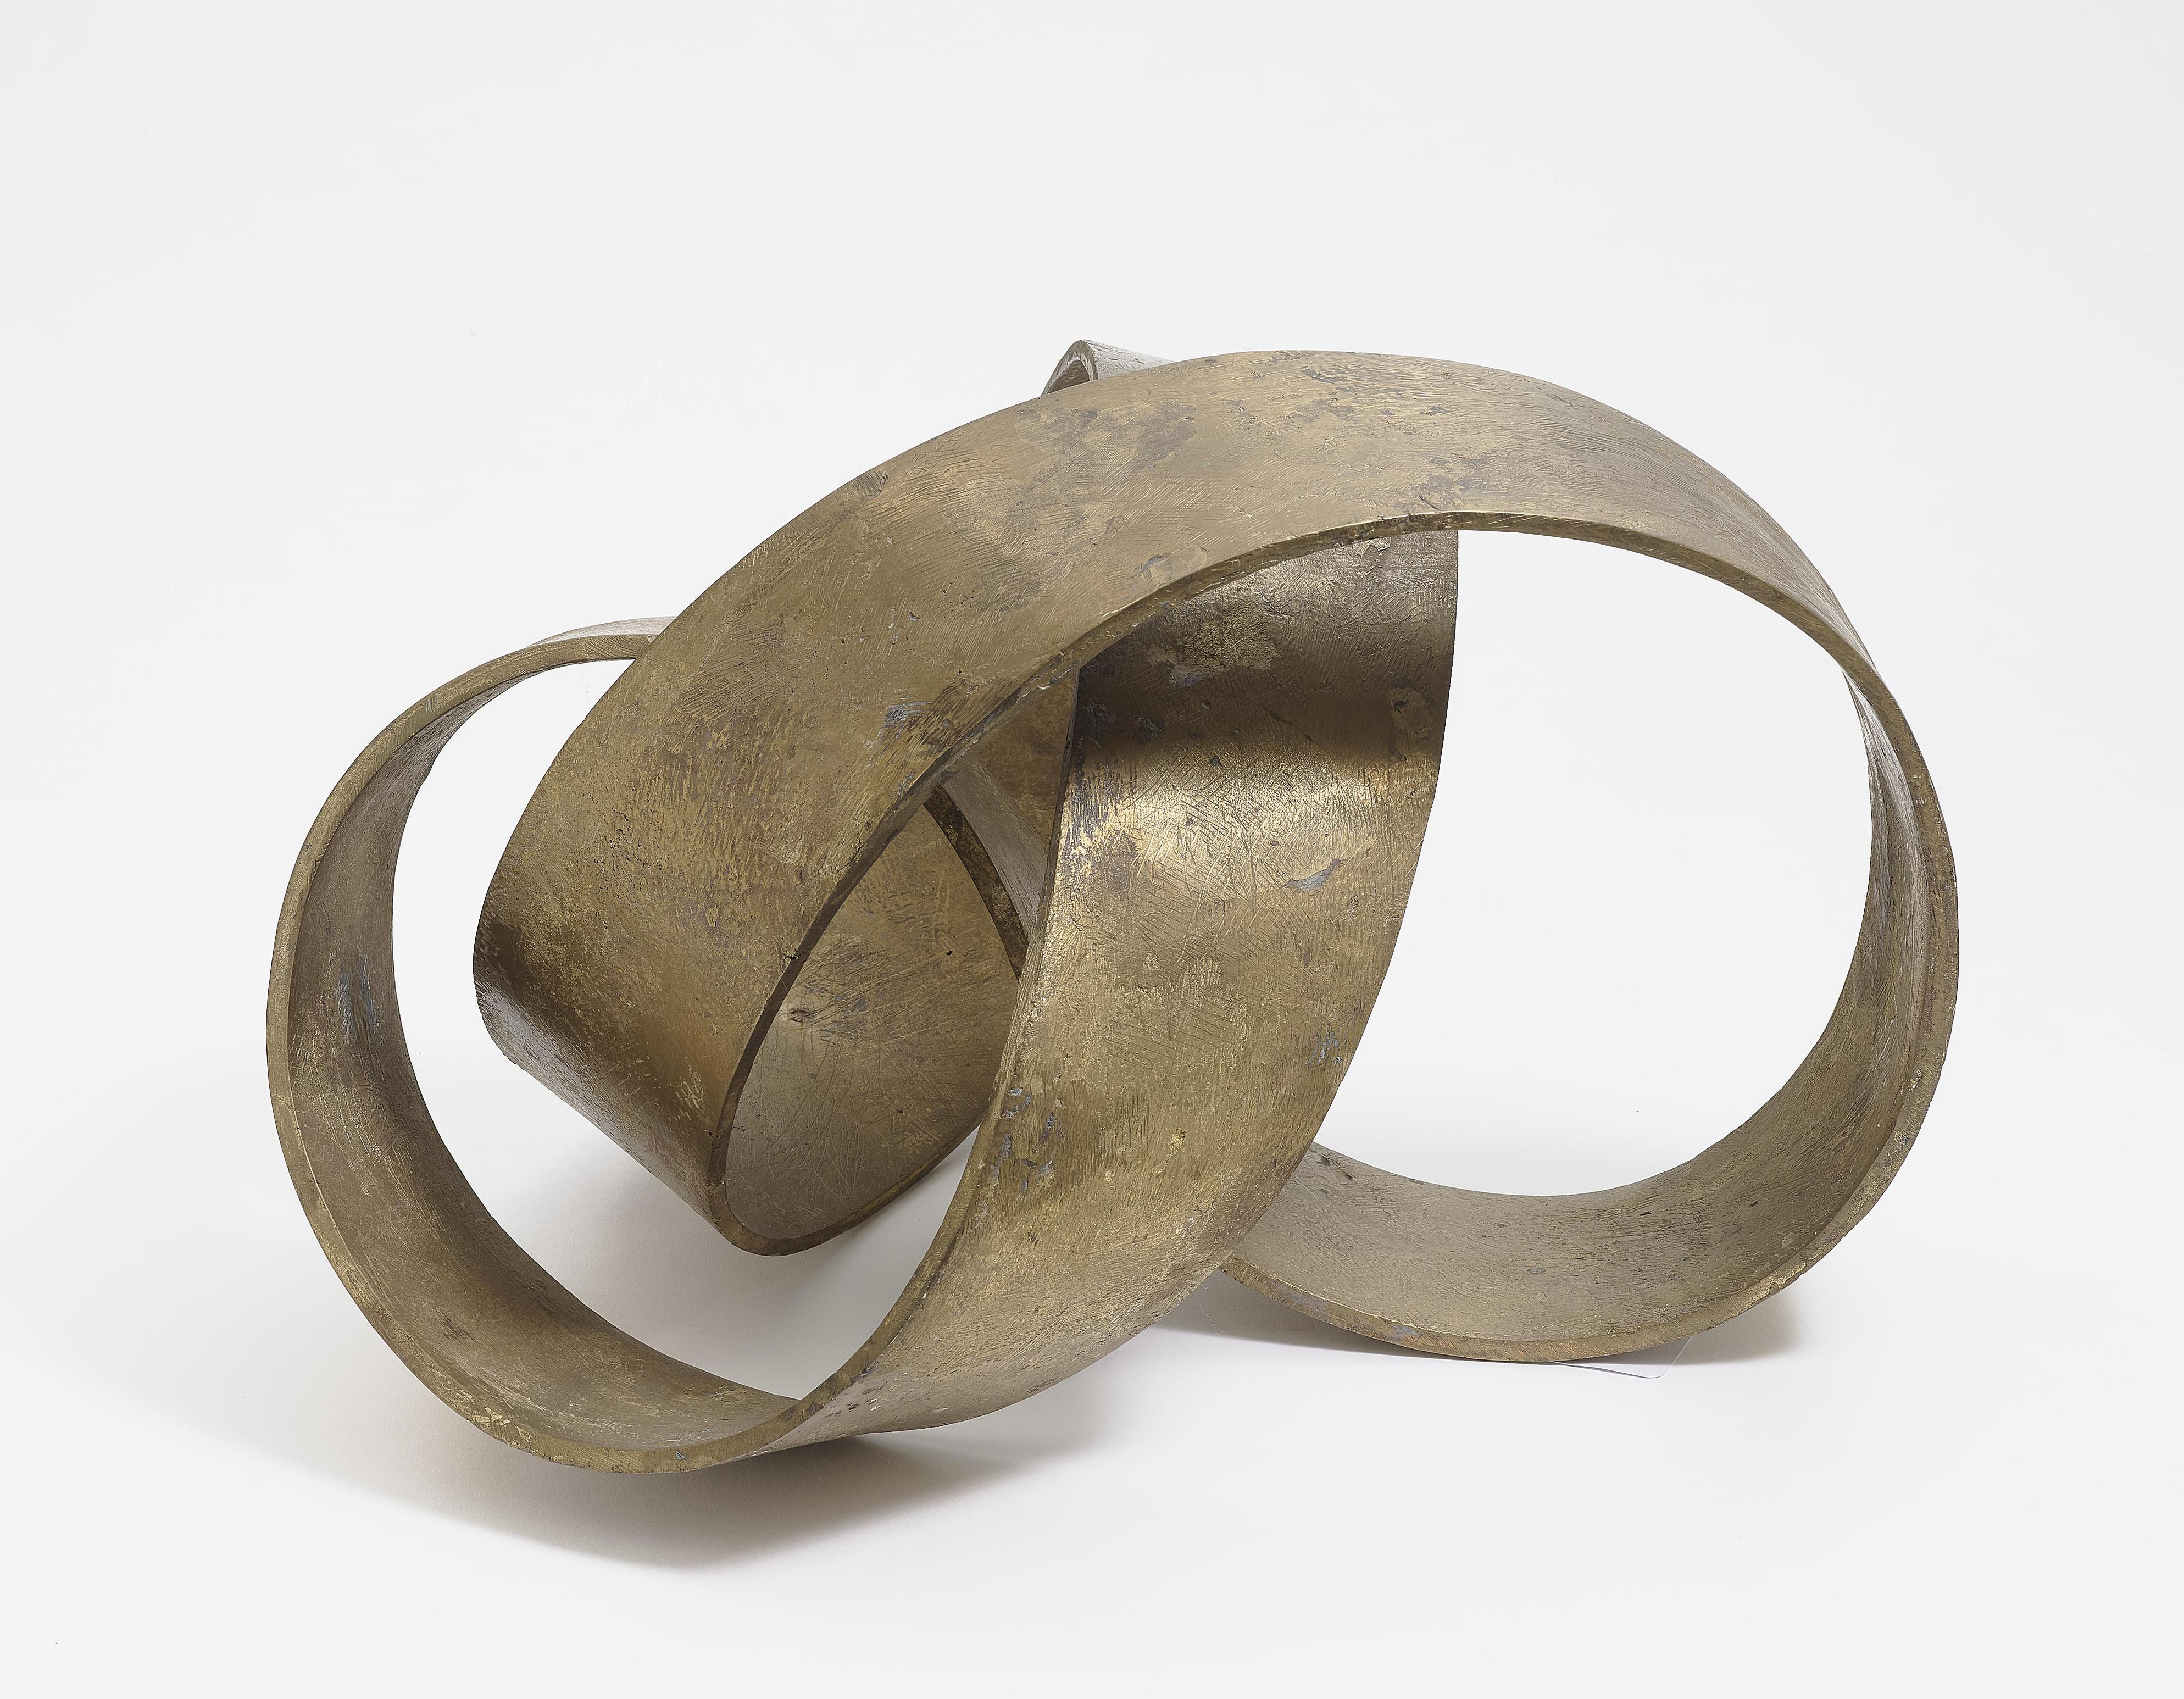 Marie Luise Wilckens - Hommage A Mobius I-1987